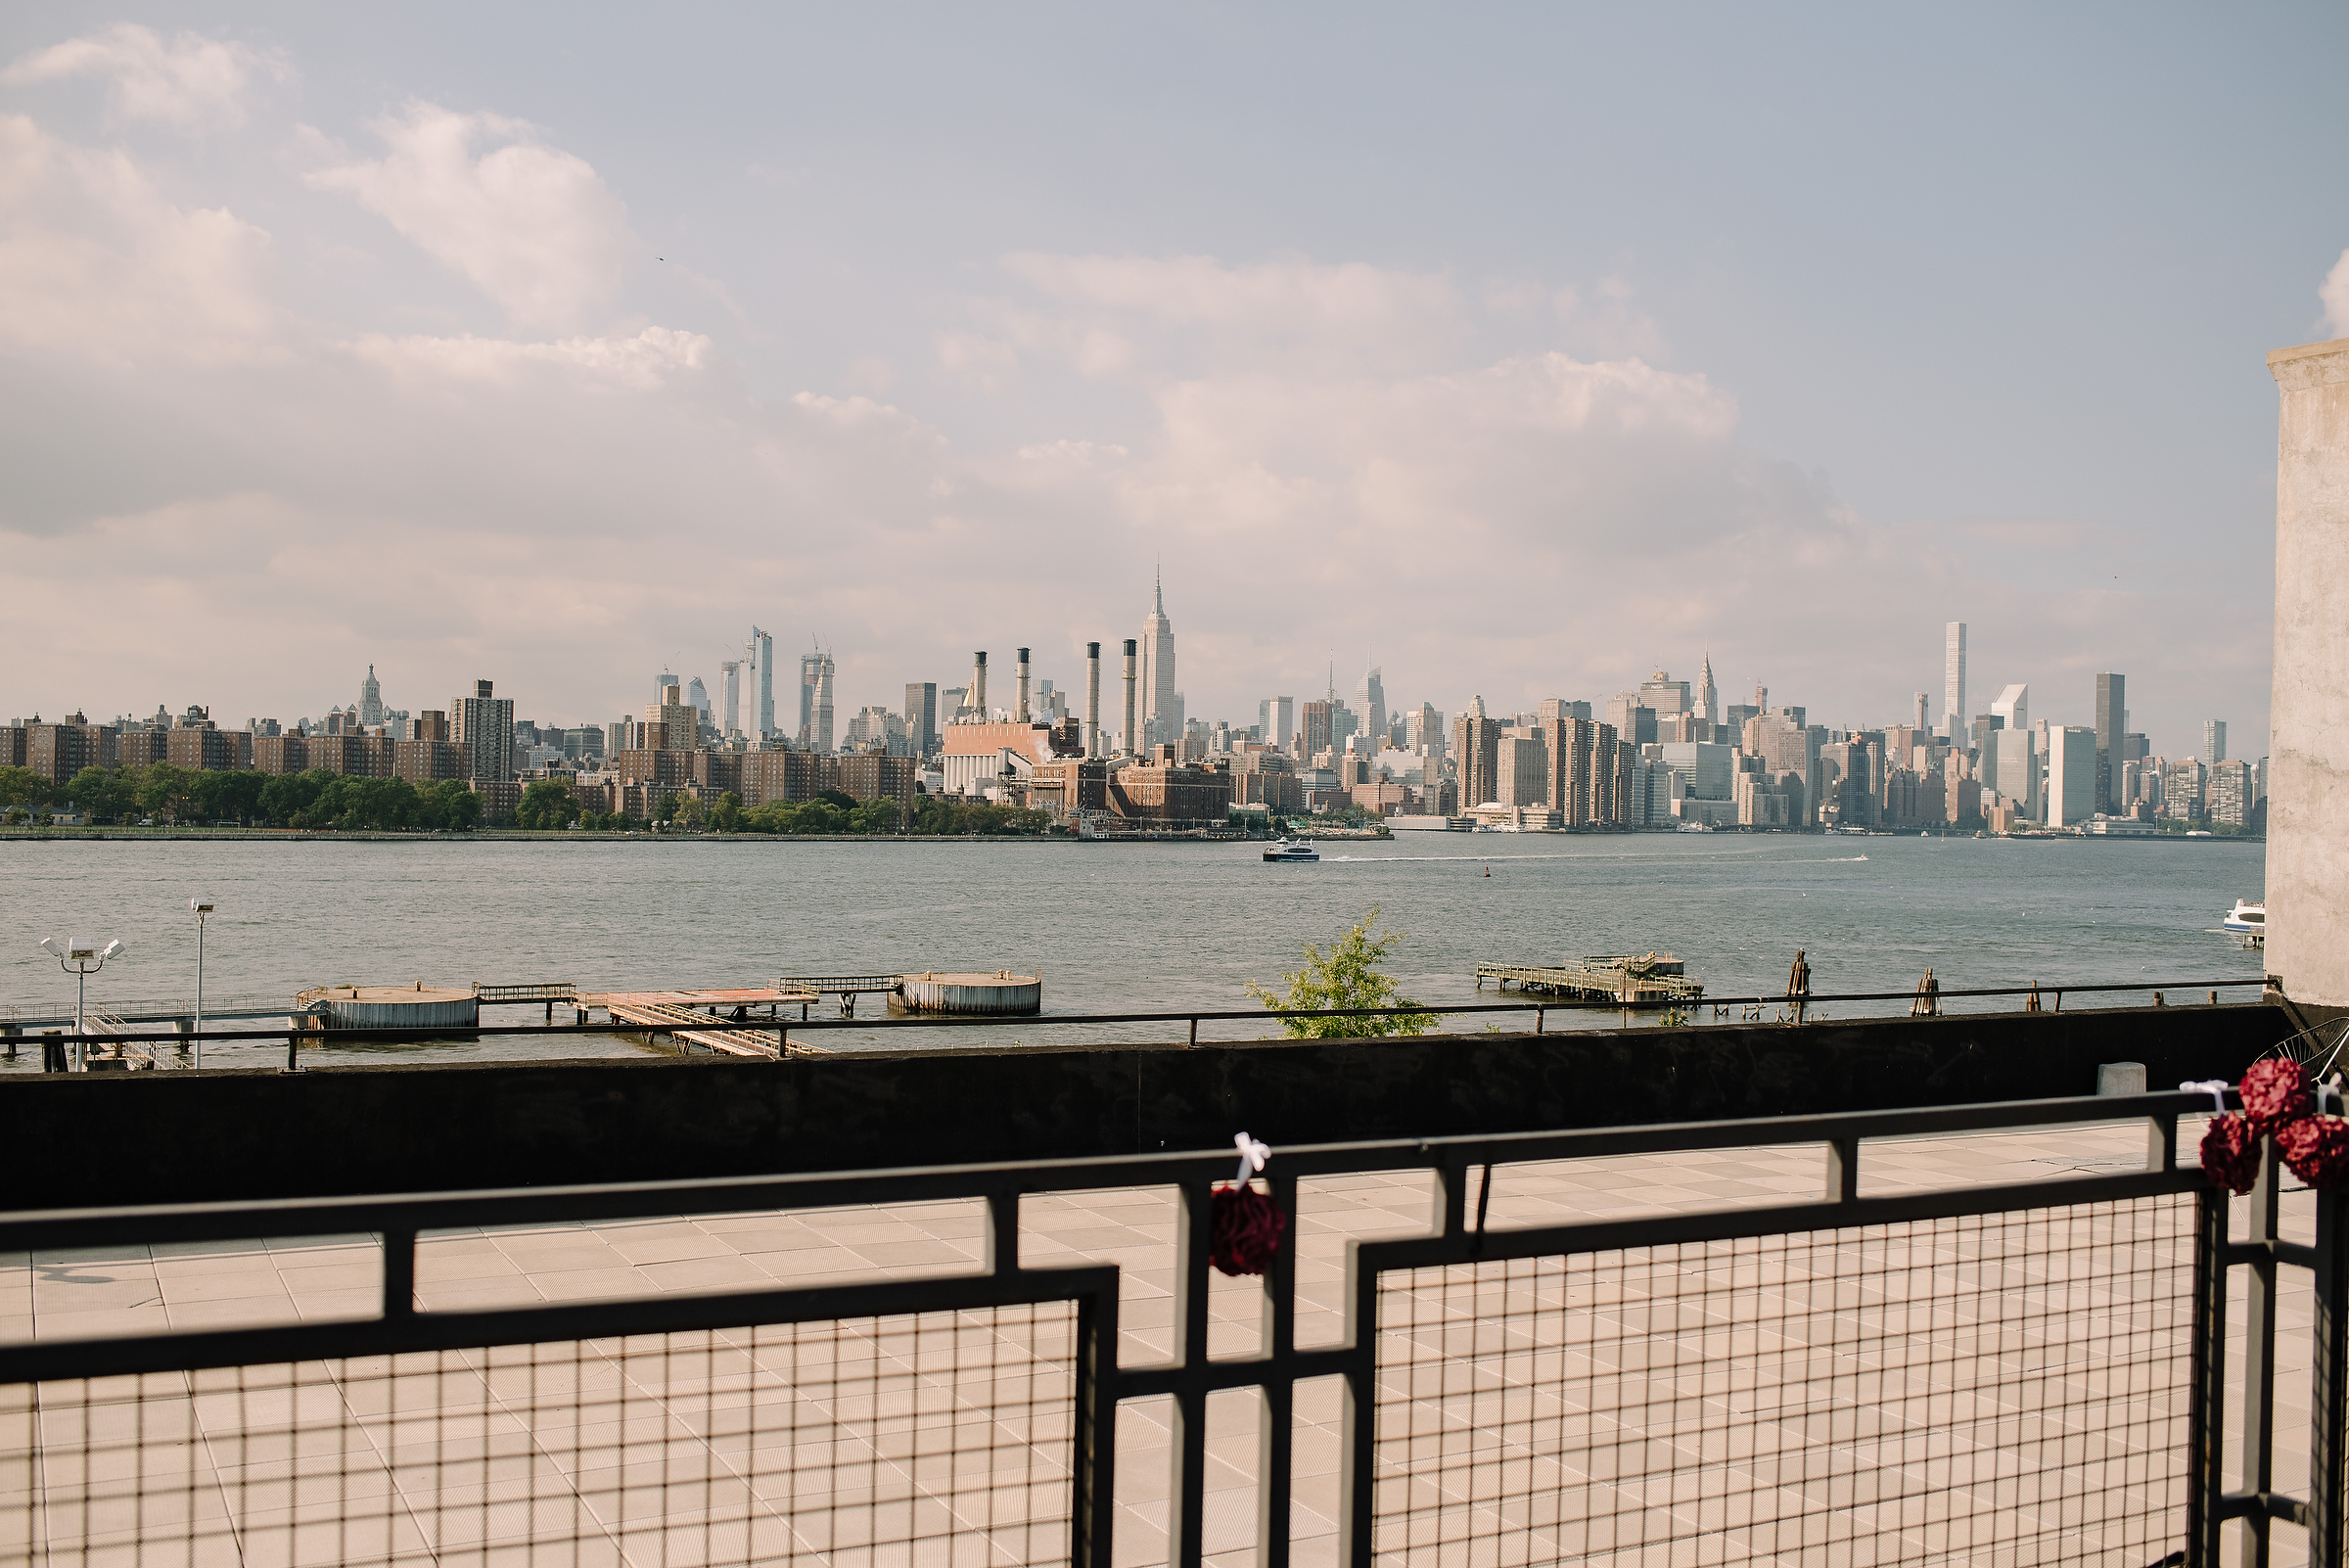 NYC skyline views from dumbo in brooklyn for weddings